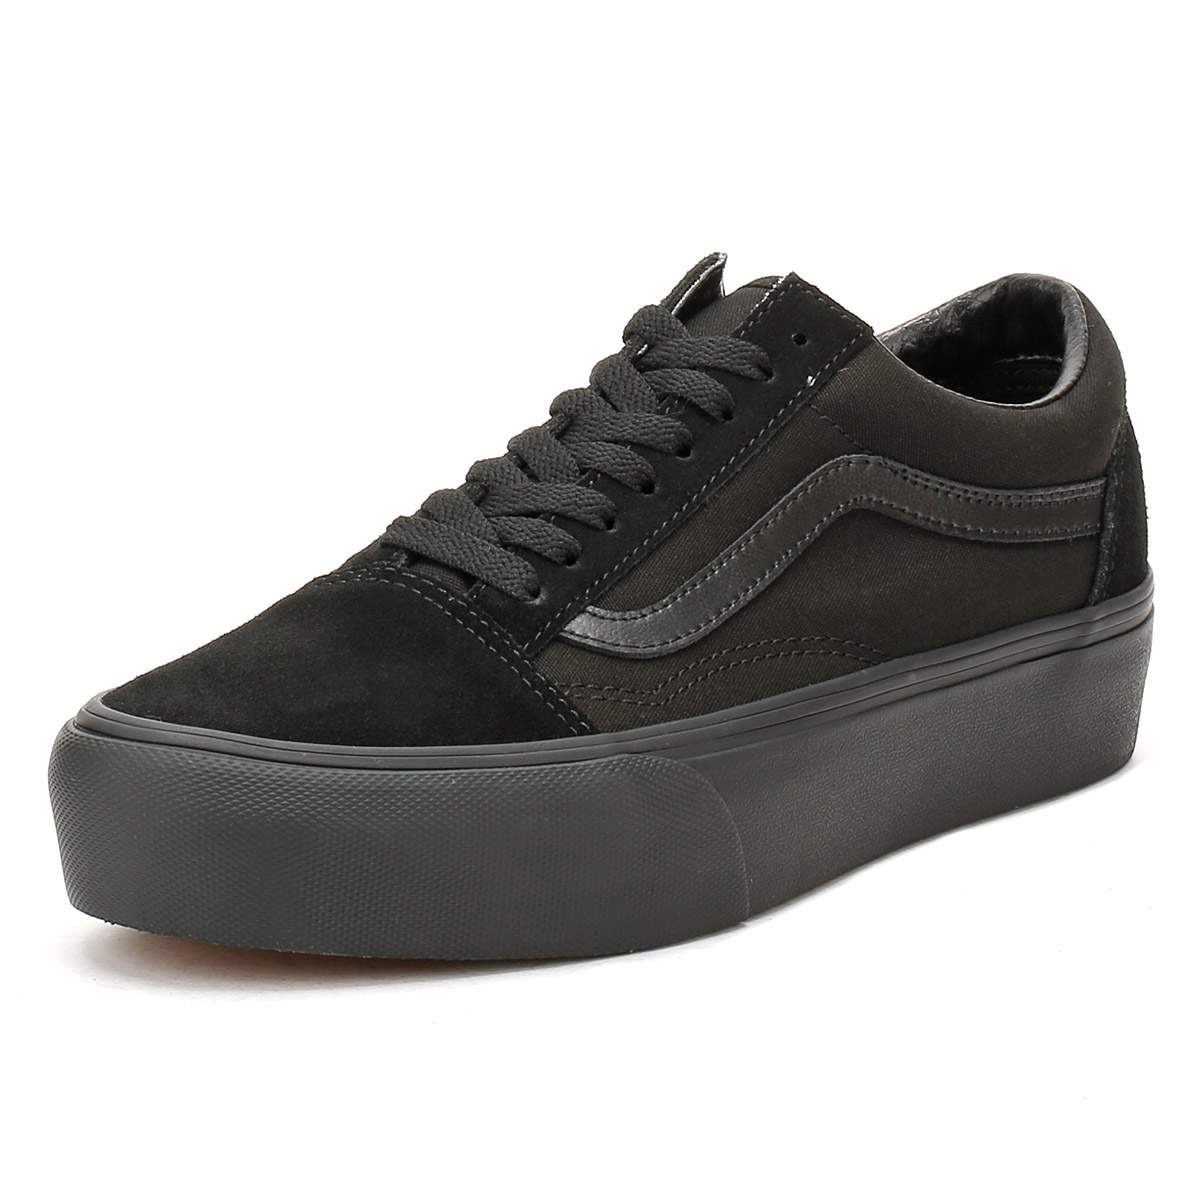 all black vans old skool platform